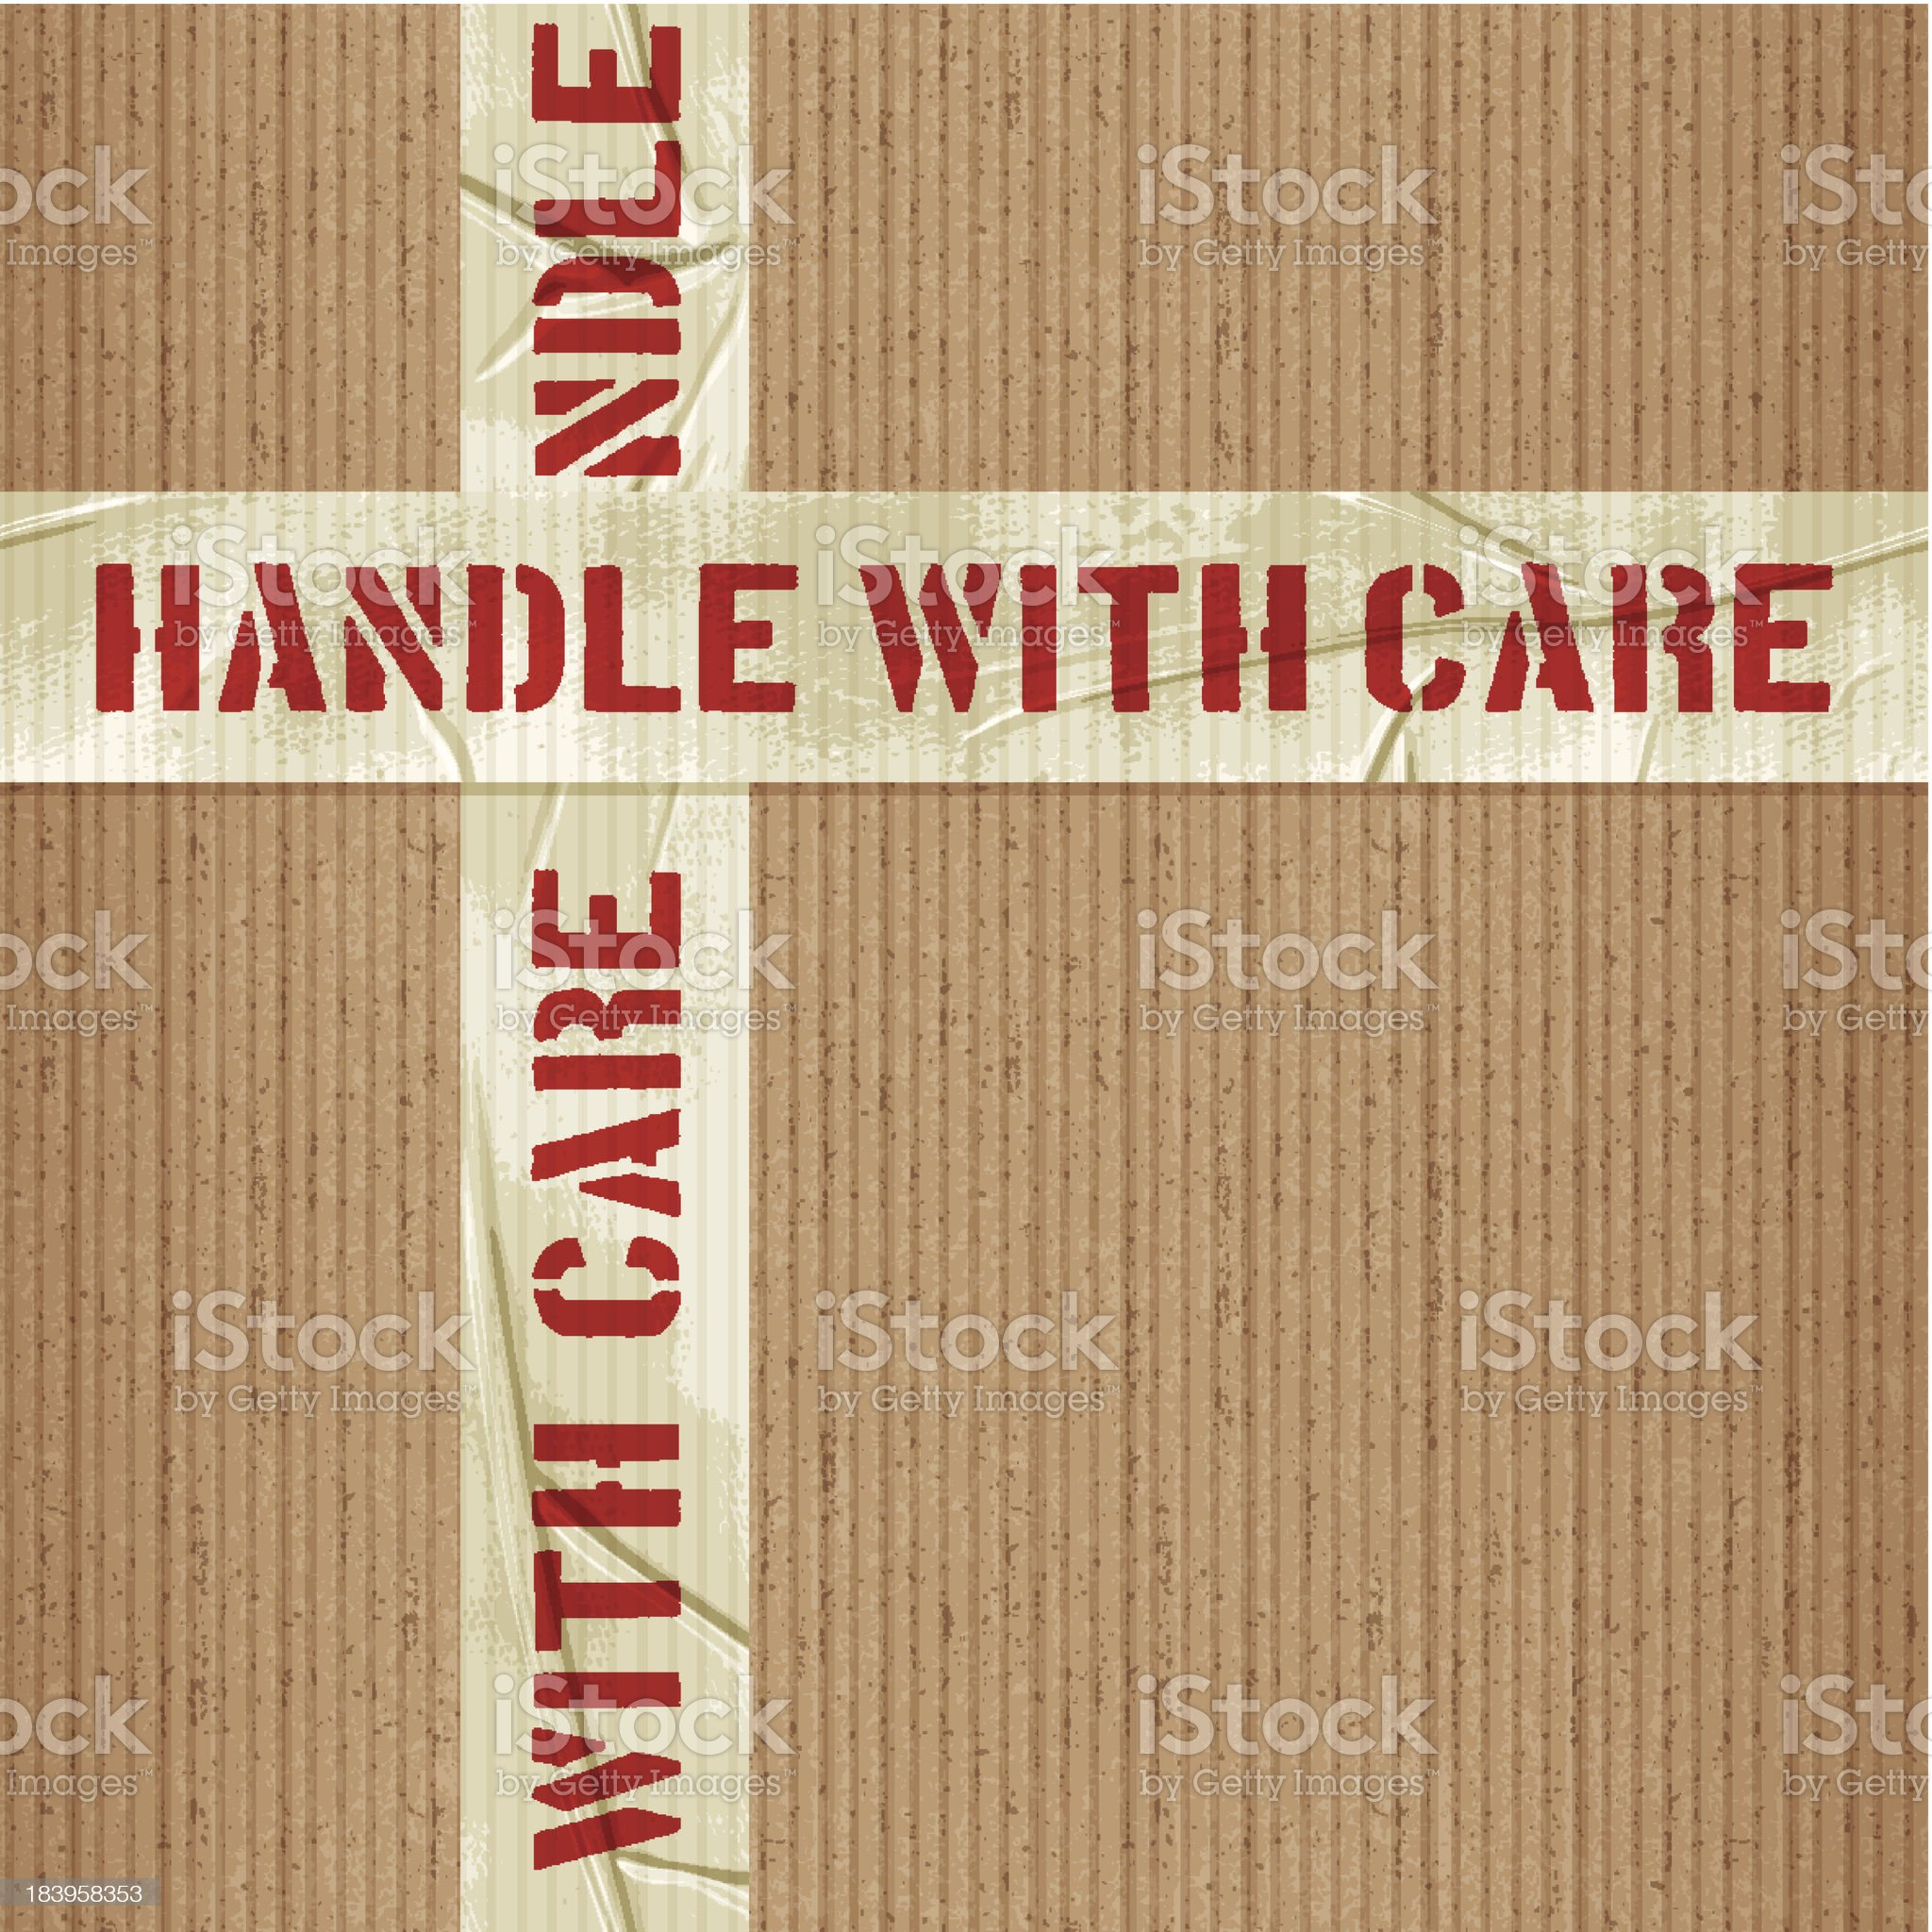 seamless handle with care tile royalty-free stock vector art